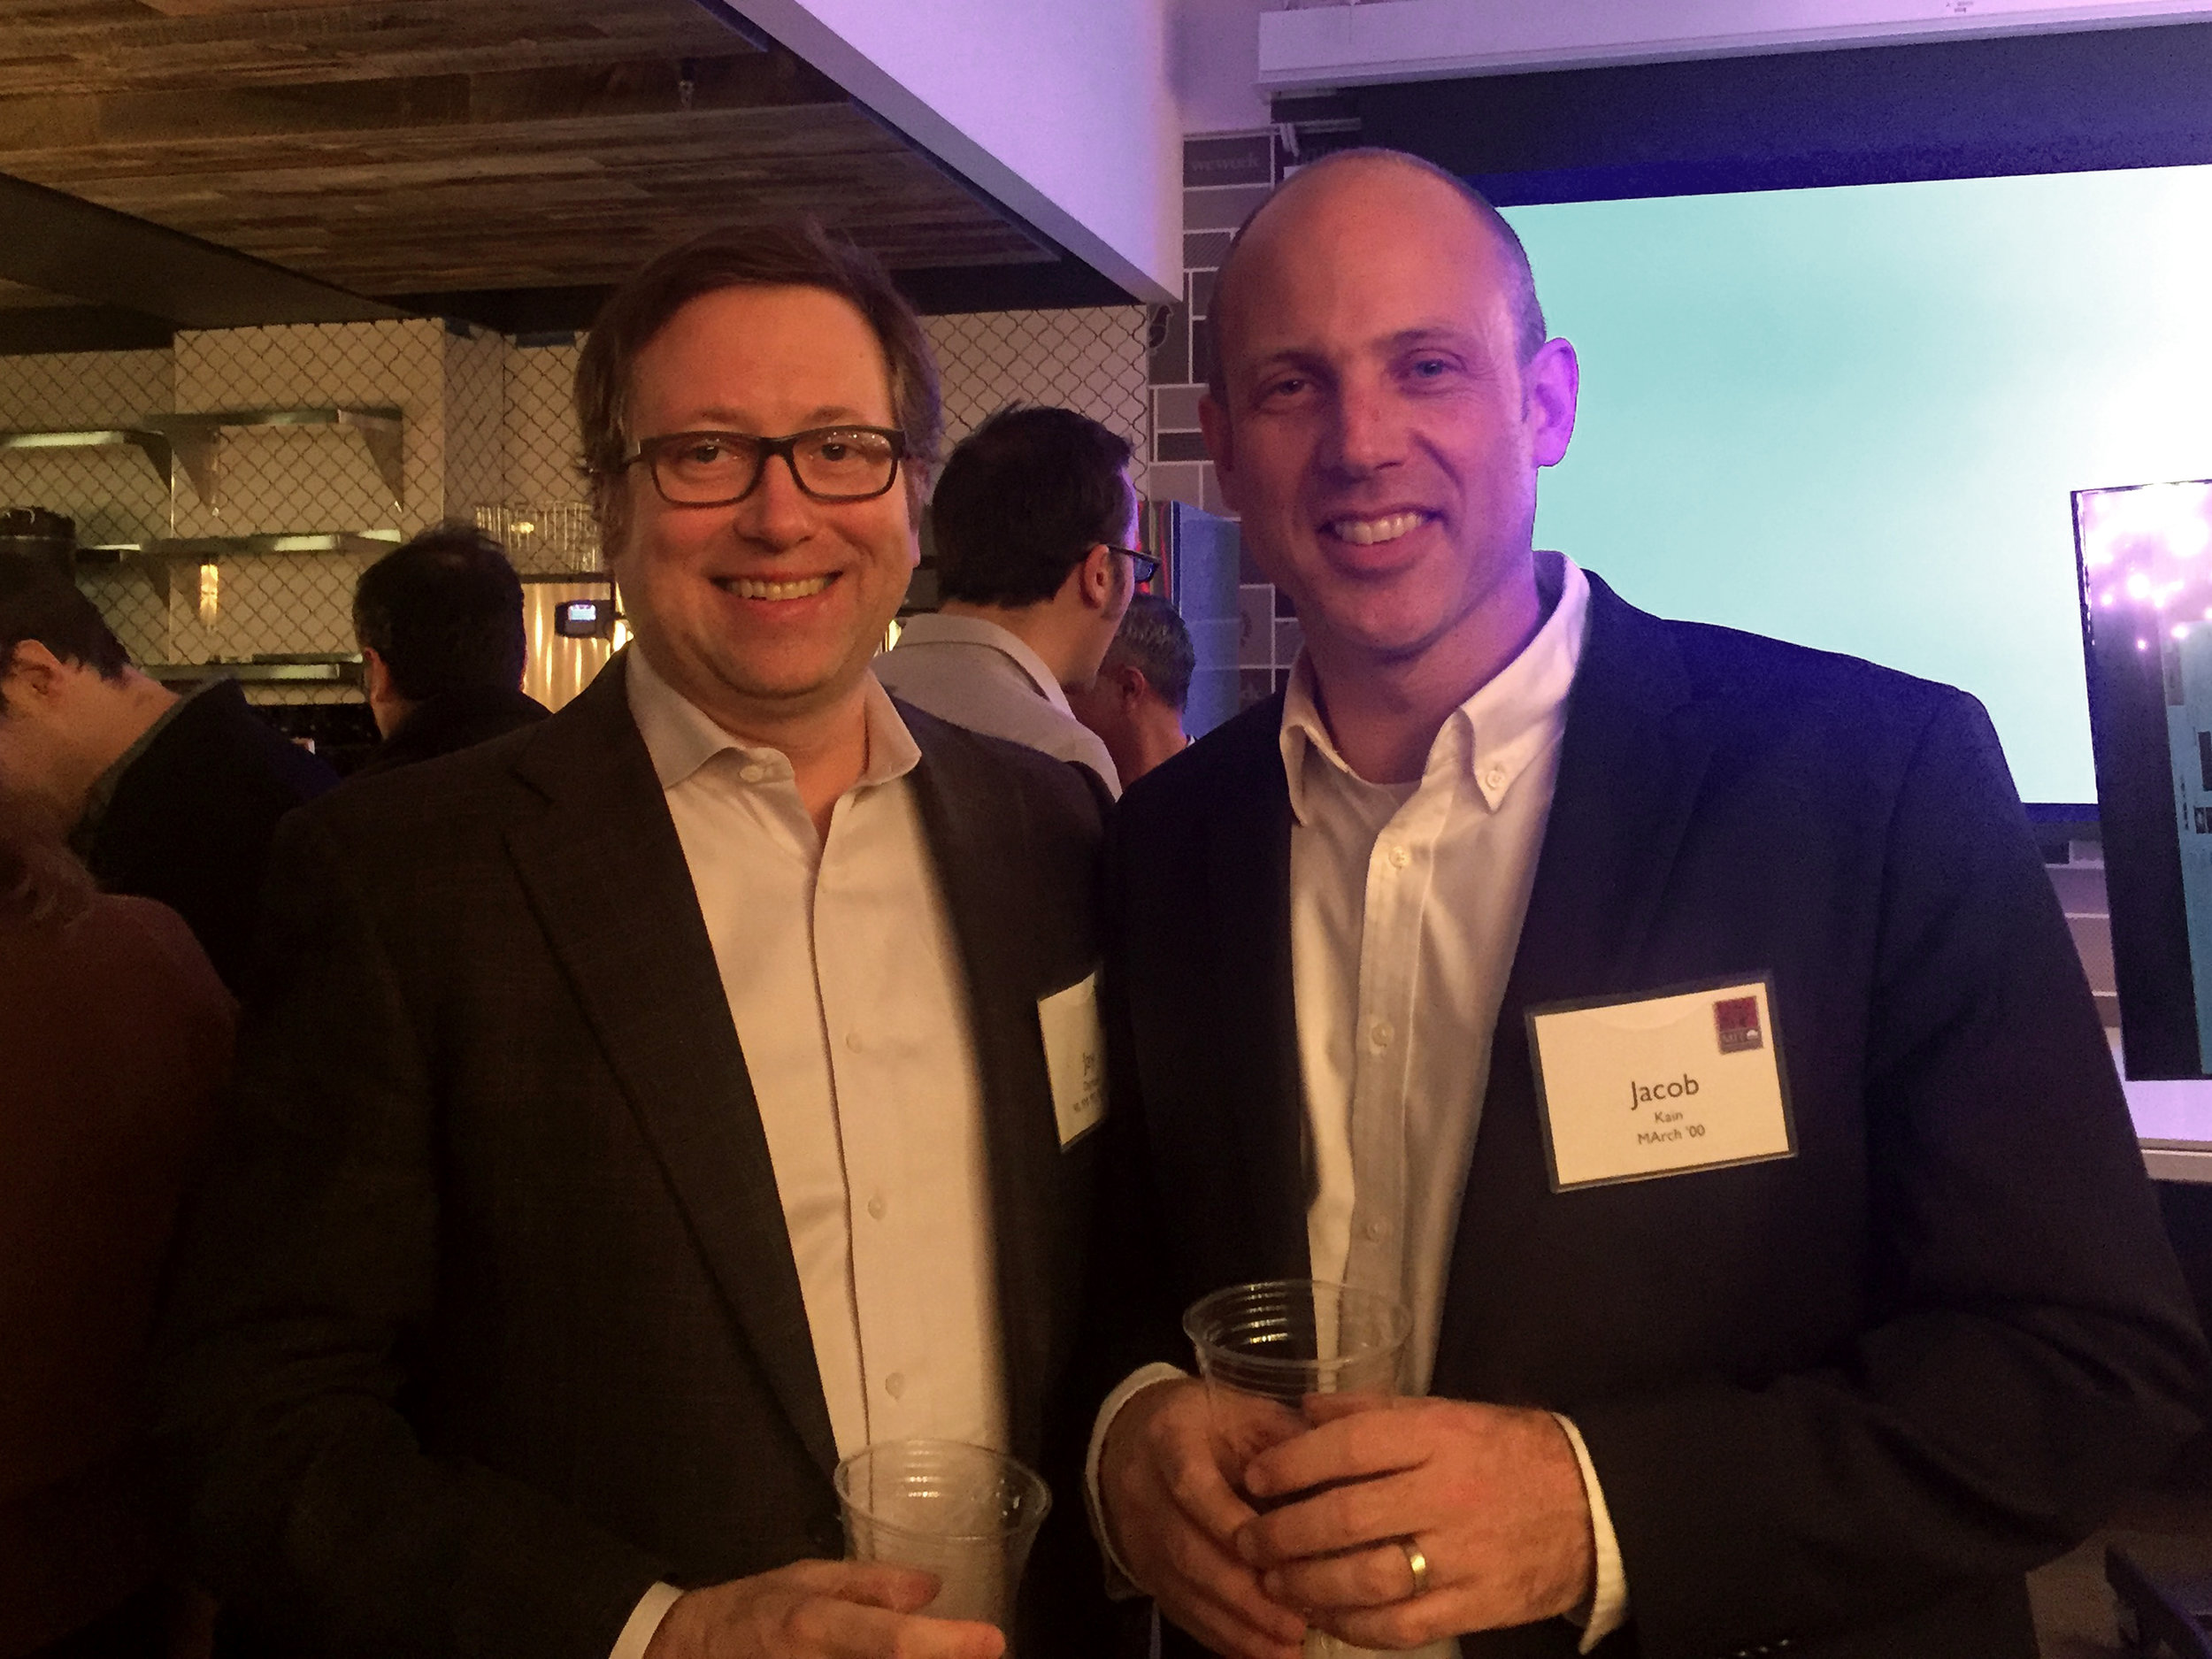 Jay Damask '90 President of the MIT Club of New York and Jacob Kain MArch '00, President of MITArchA.